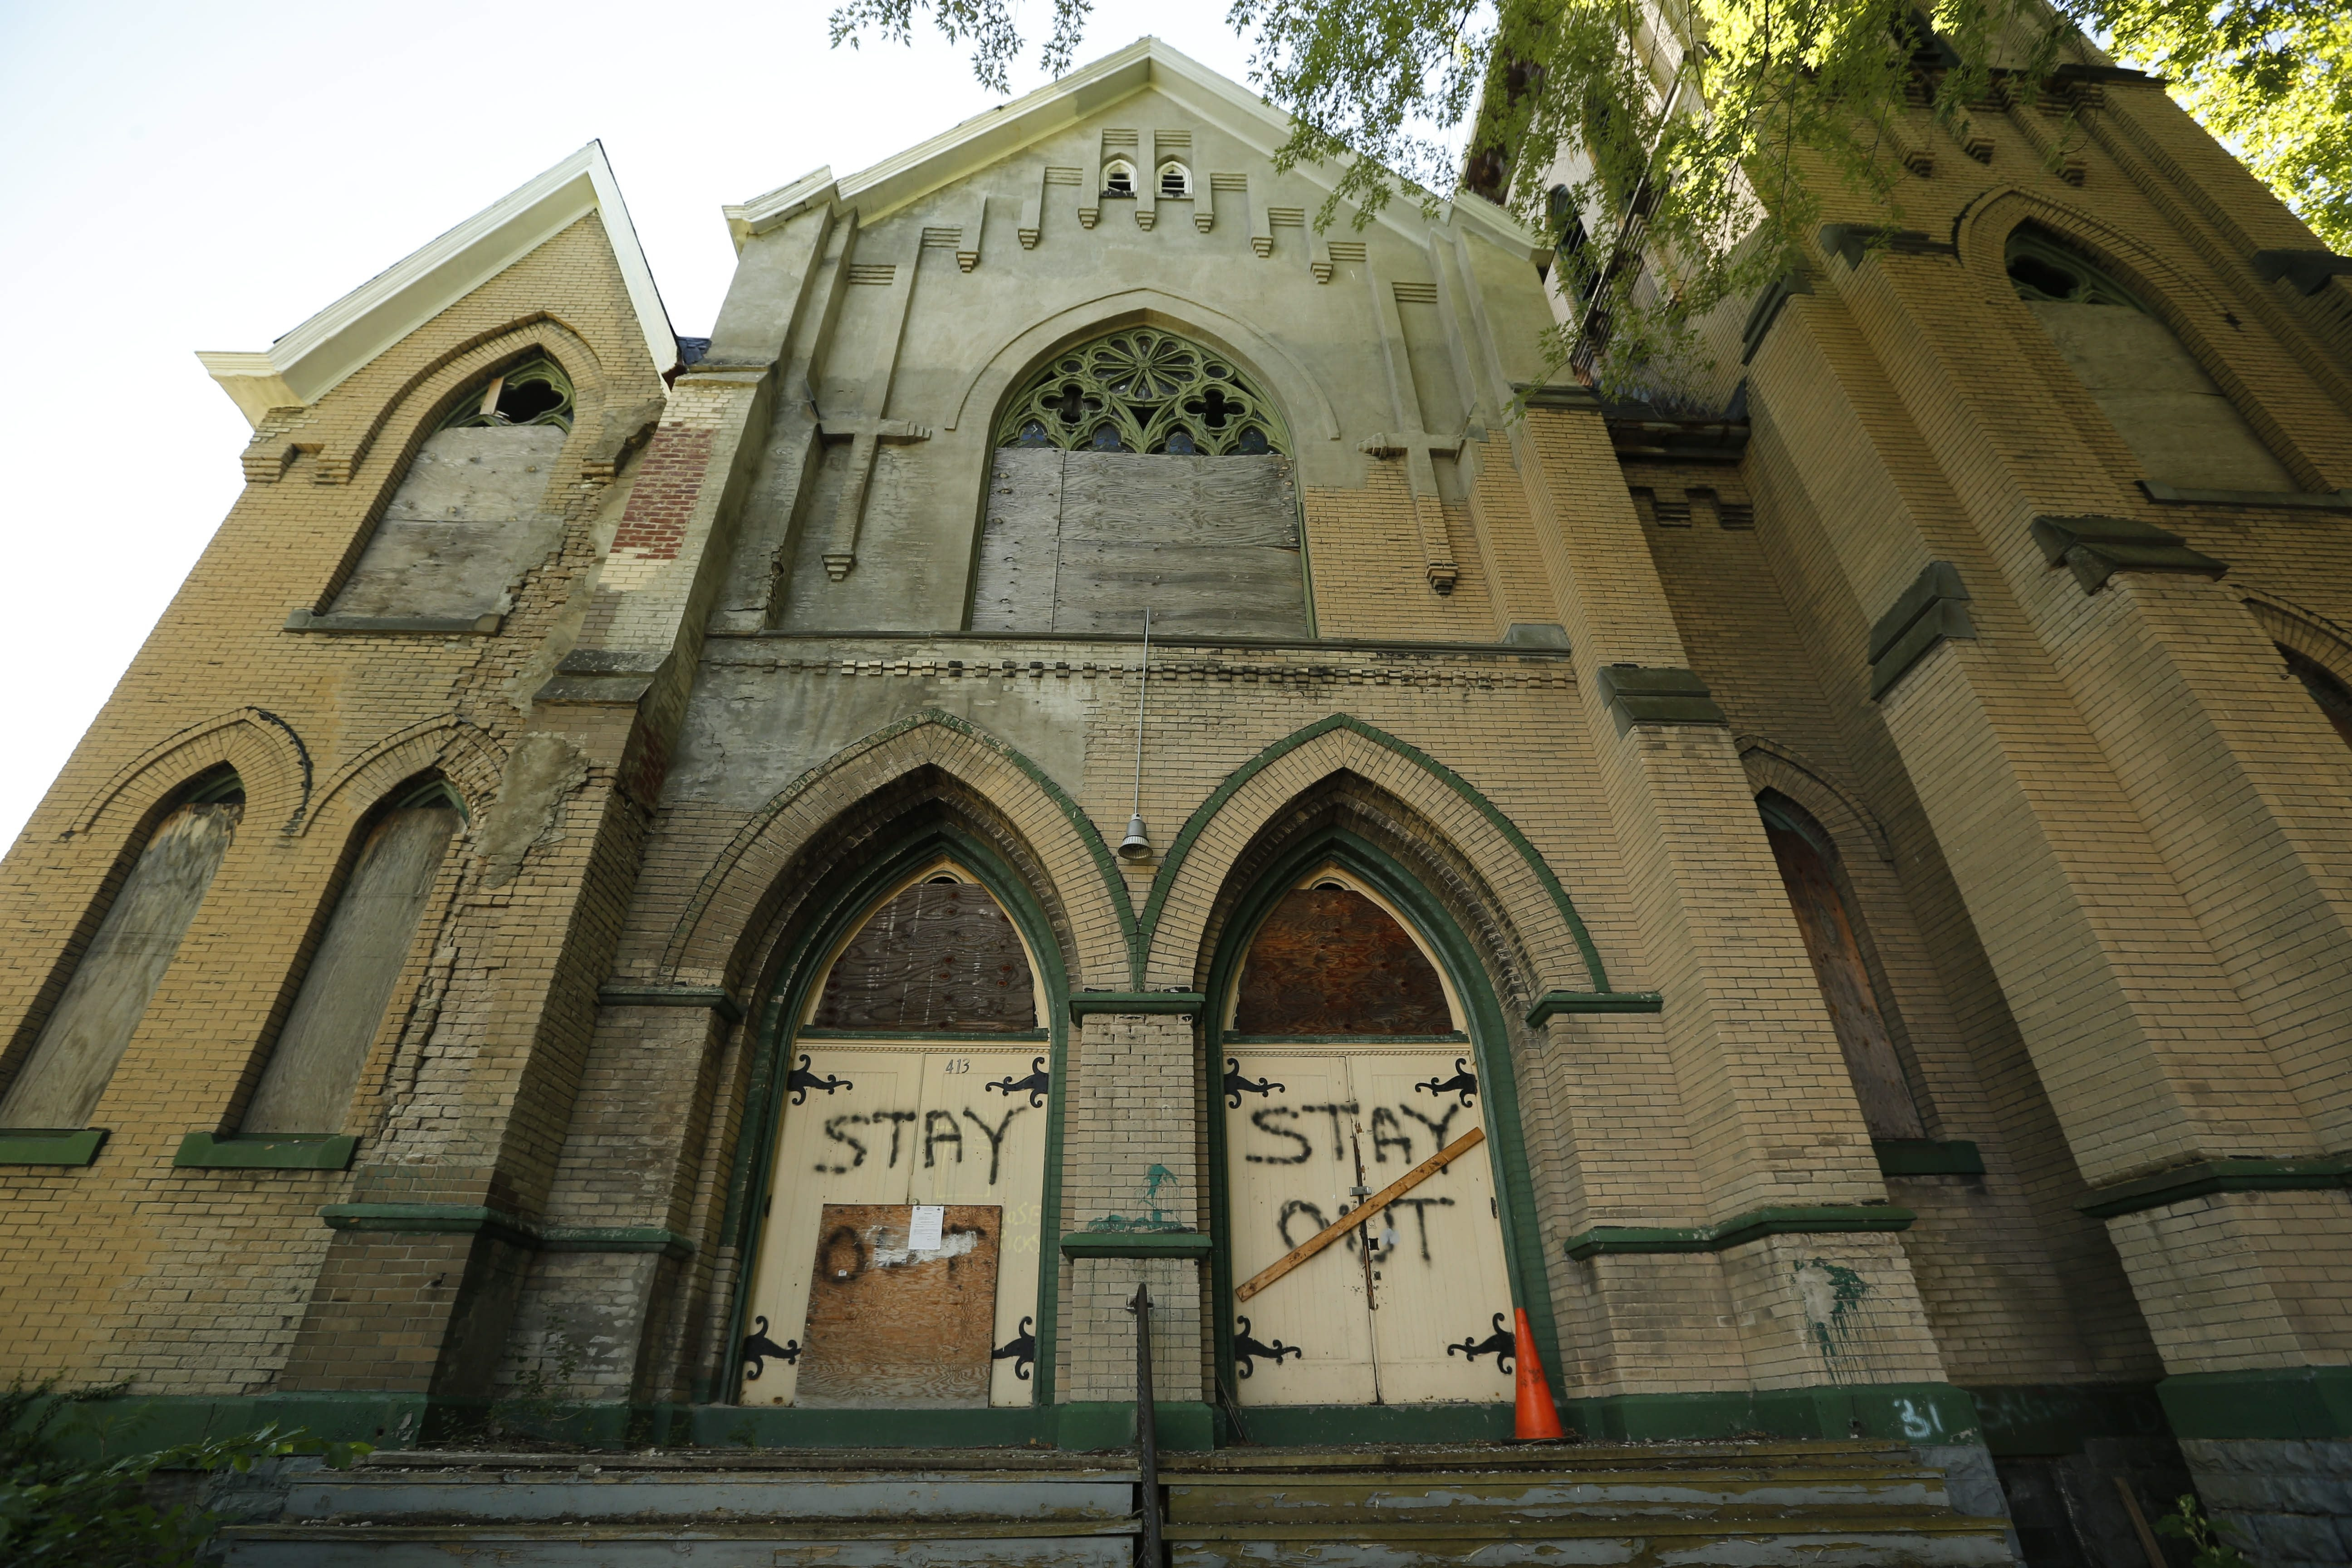 The former Salem Evangelical Reformed Church building at 413 Sherman St. has been decaying since it was purchased four years ago. (Derek Gee/Buffalo News)